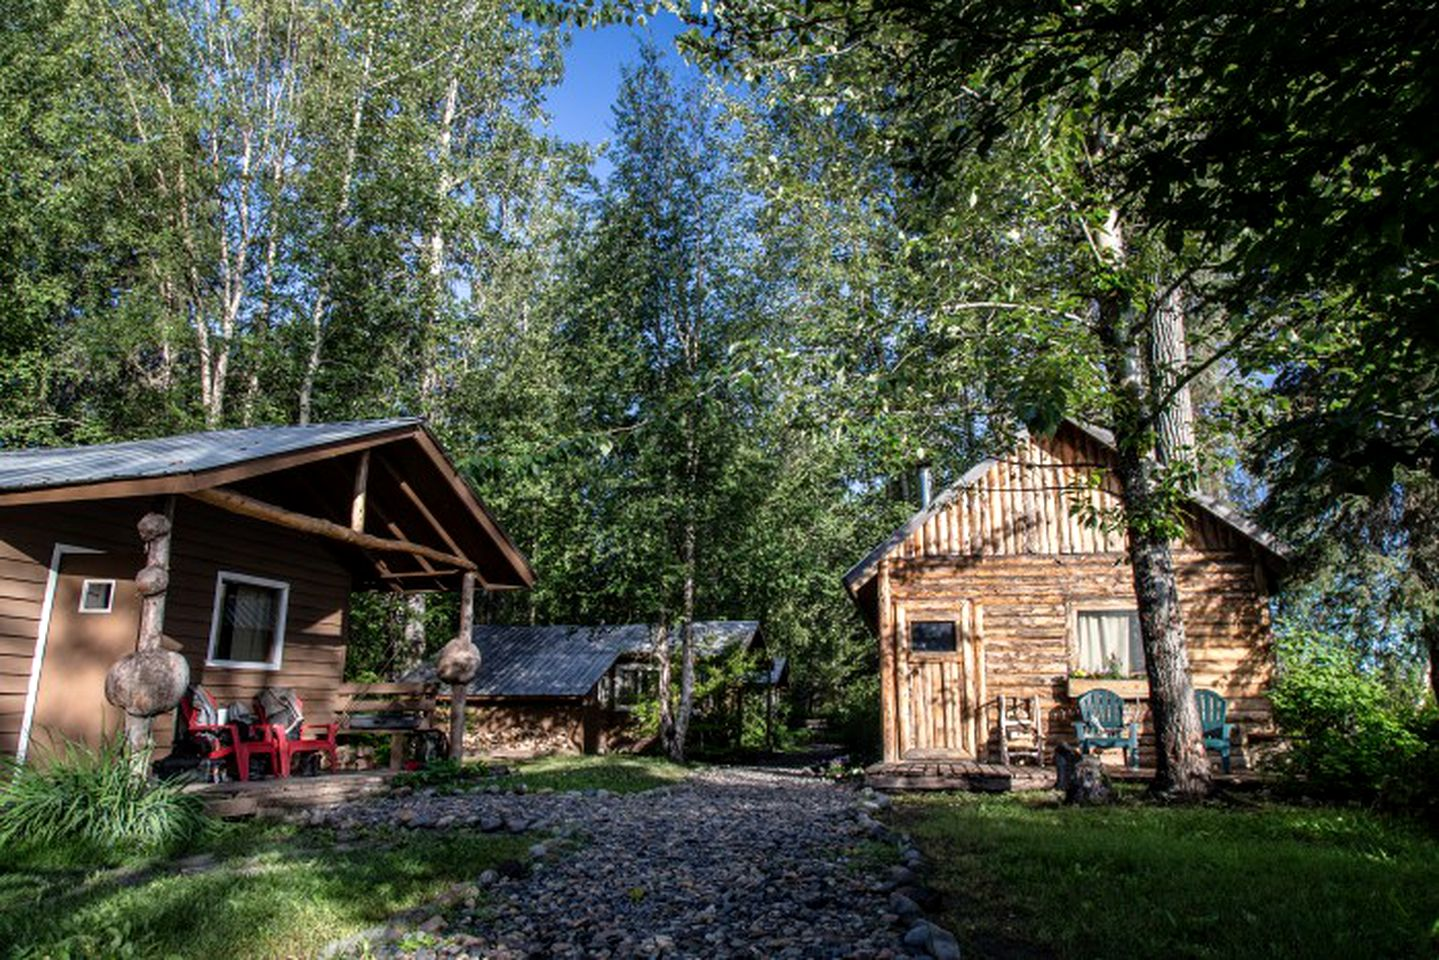 Anchorage, Alaska fishing lodge with all-inclusive vacation packages.